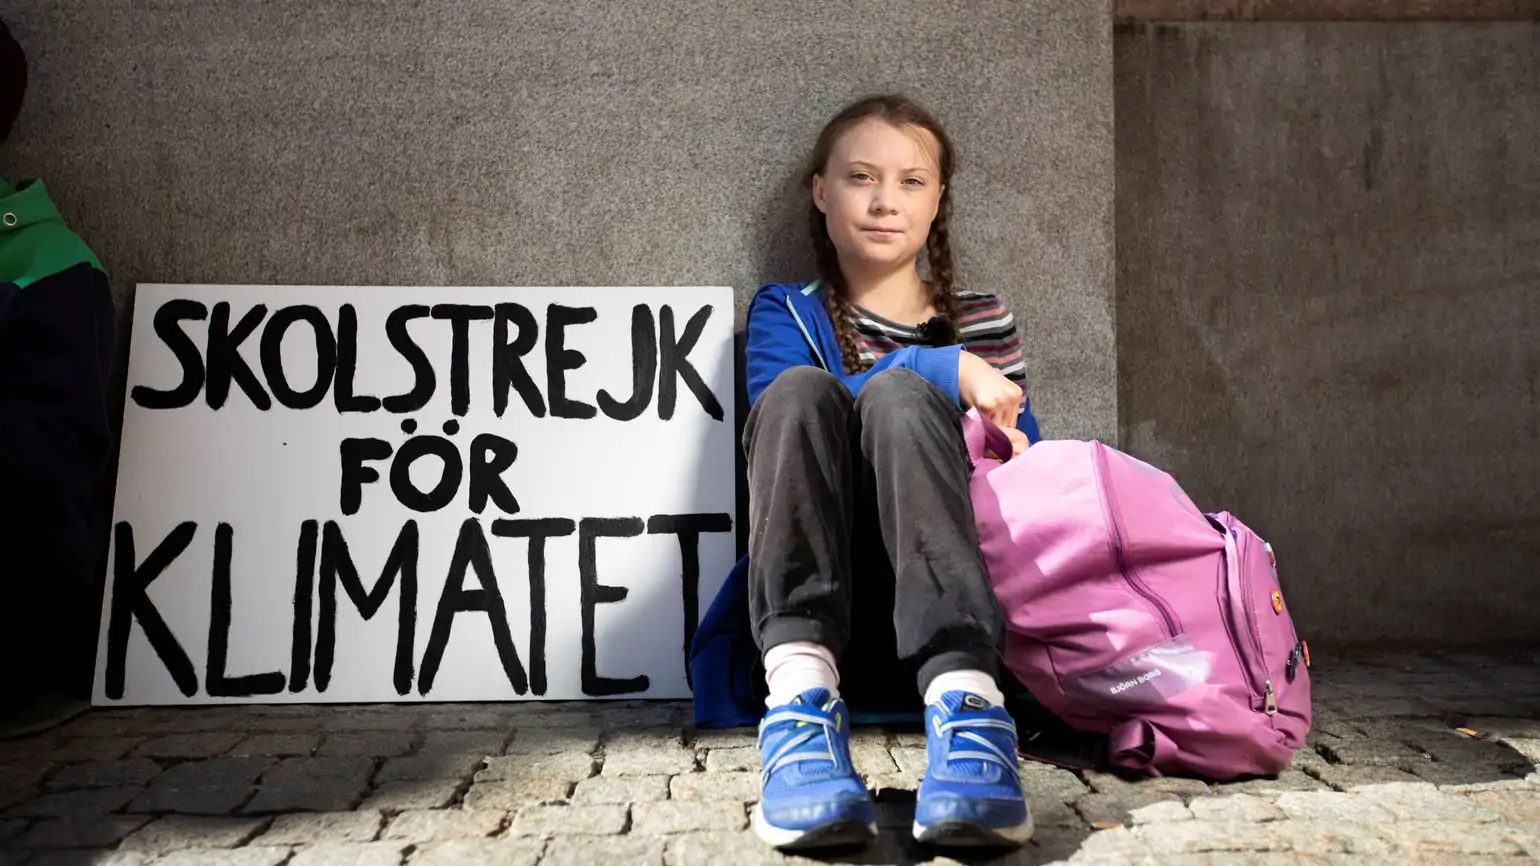 Greta Thunberg demanding this crisis is treated as a crisis, school striking until Sweden is in line with the Paris agreement